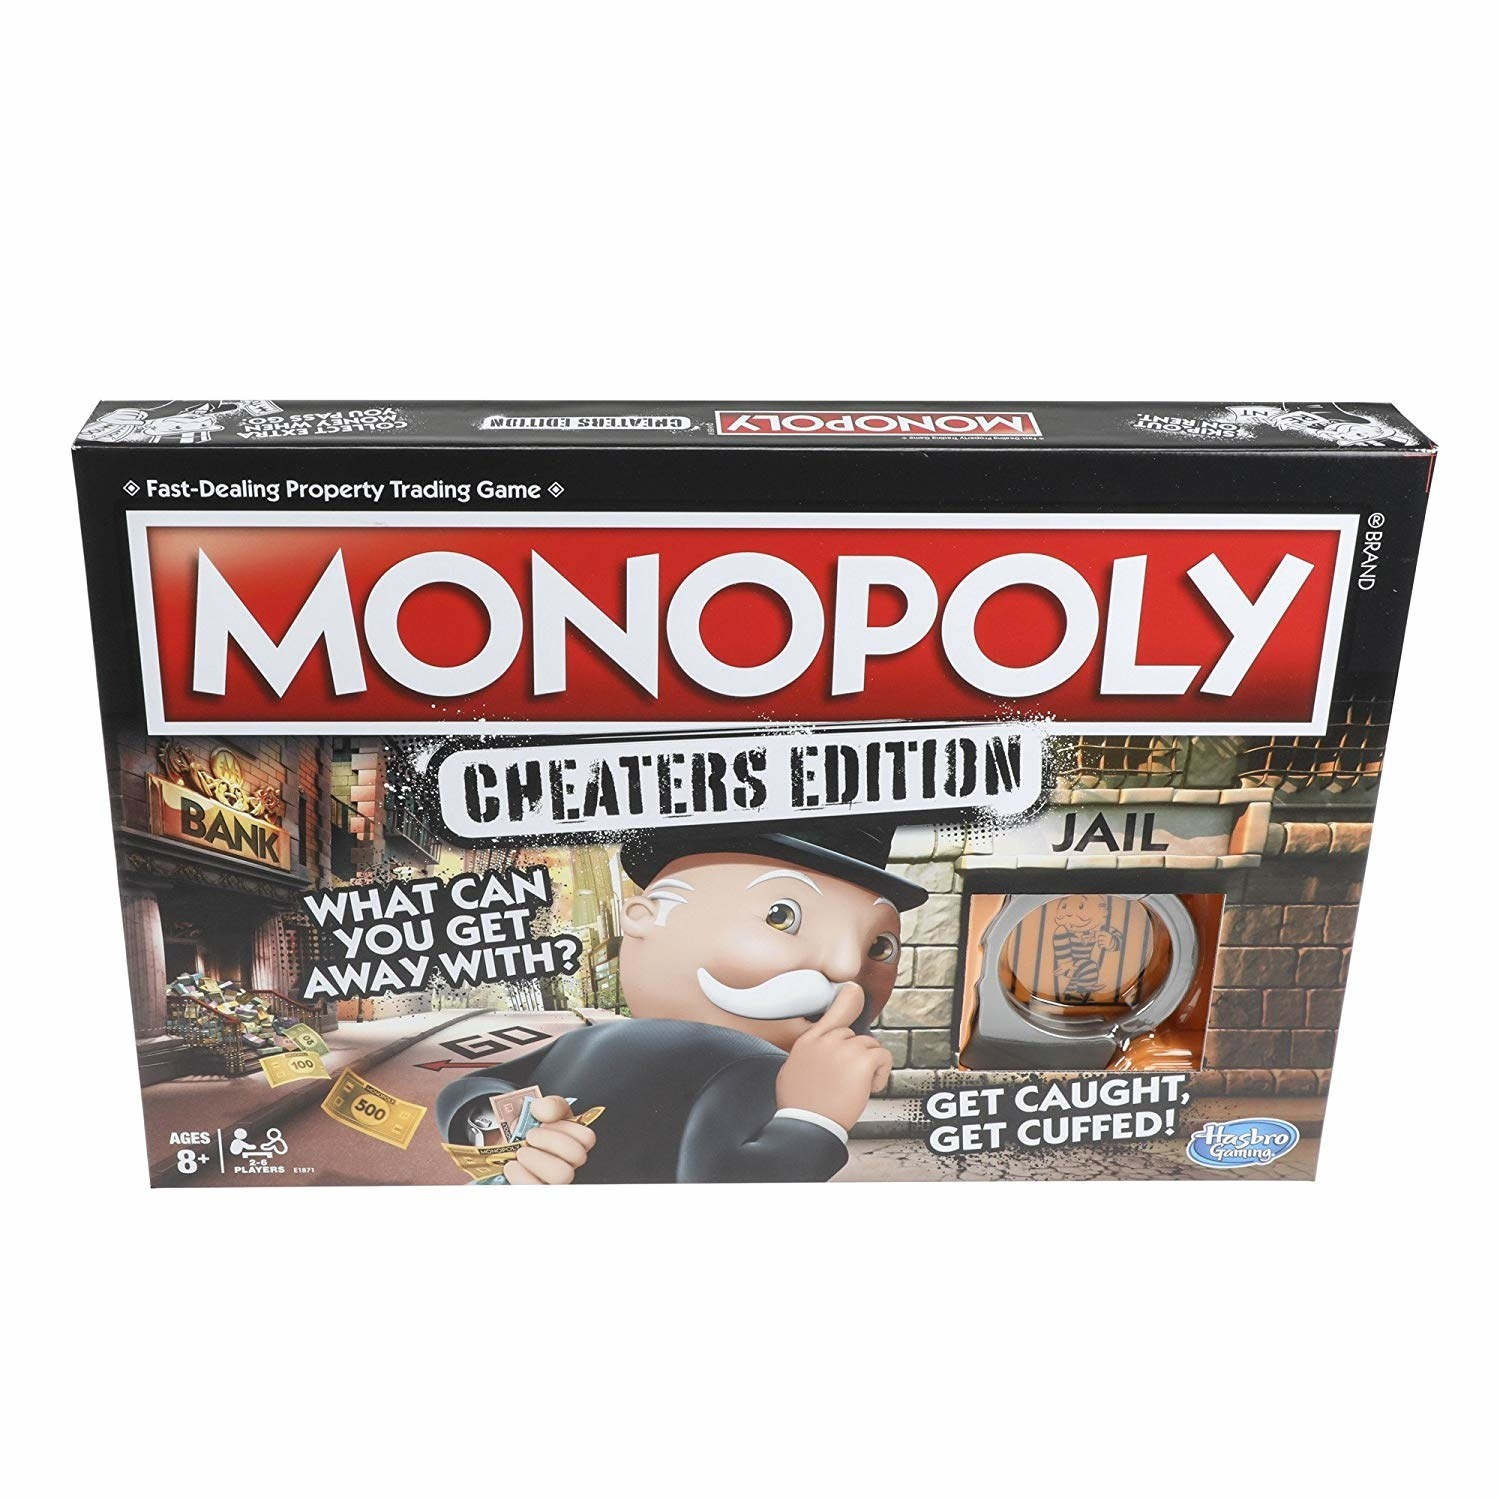 A Copy Of Monopoly Cheaters Edition For Your Brother That Motherfing Mommas Boy Has Been Skimming Those Multicolored Dolla Bills Too Damn